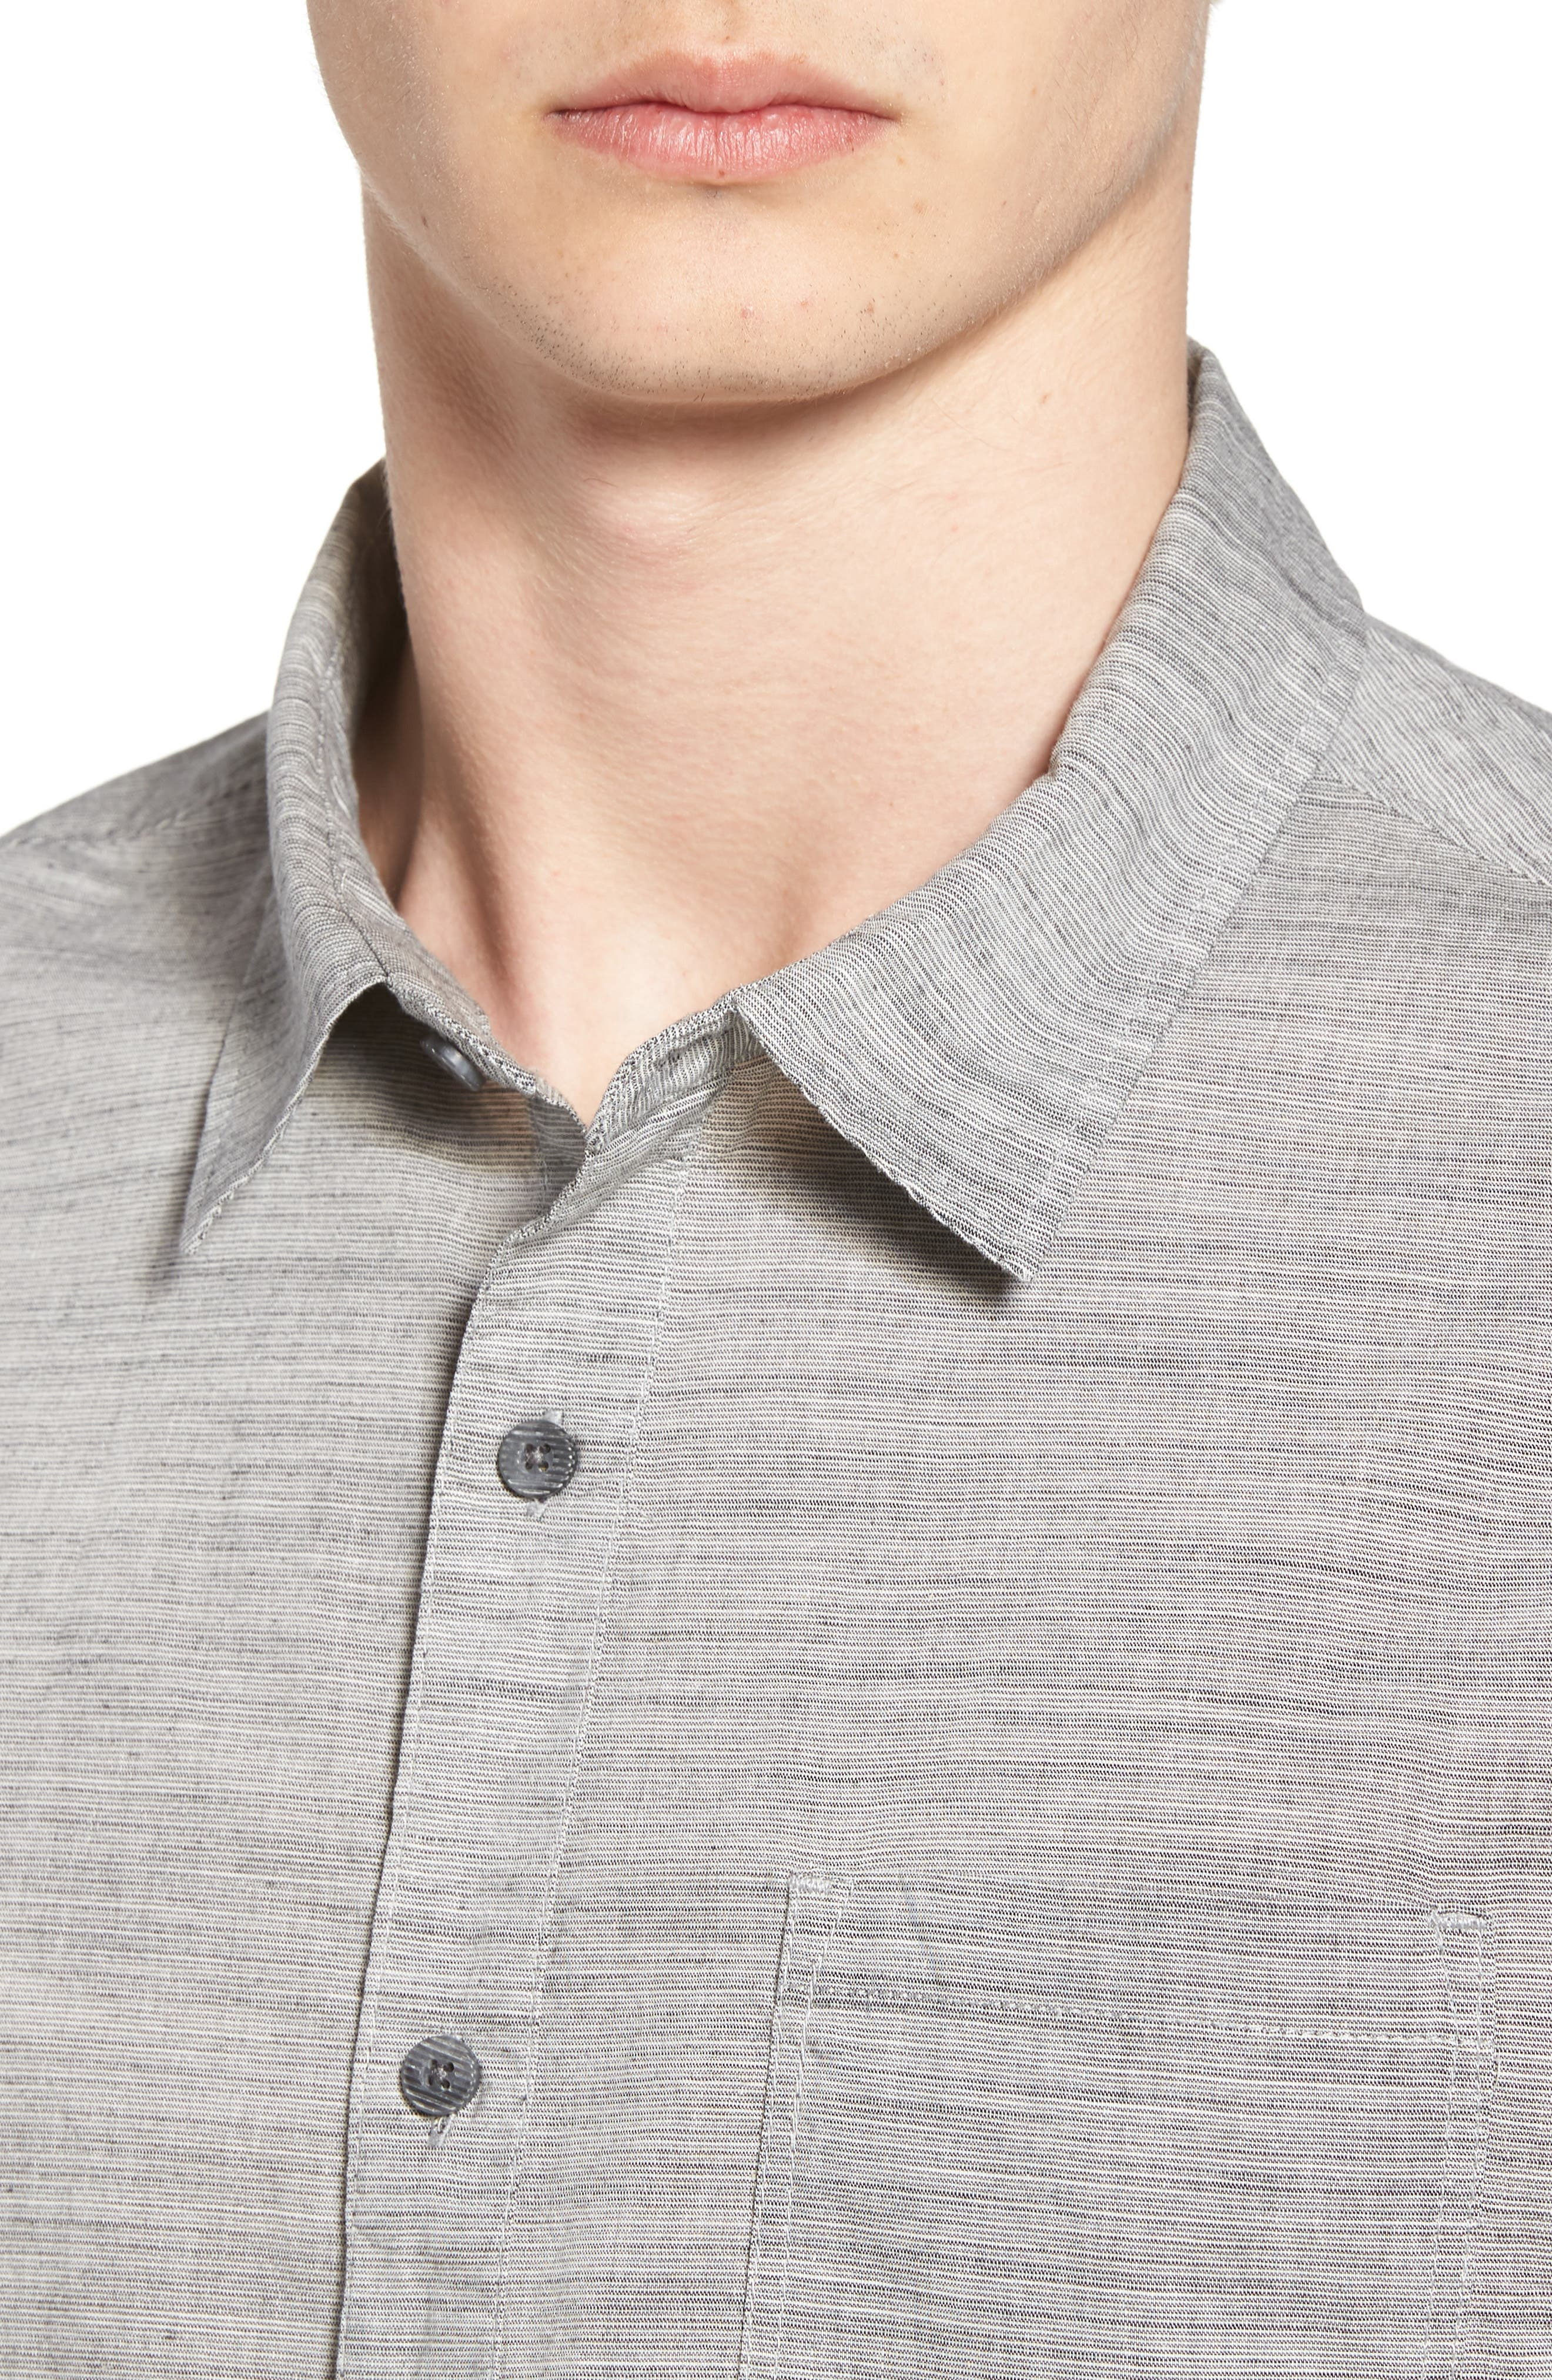 Faderade Short Sleeve Shirt,                             Alternate thumbnail 4, color,                             020